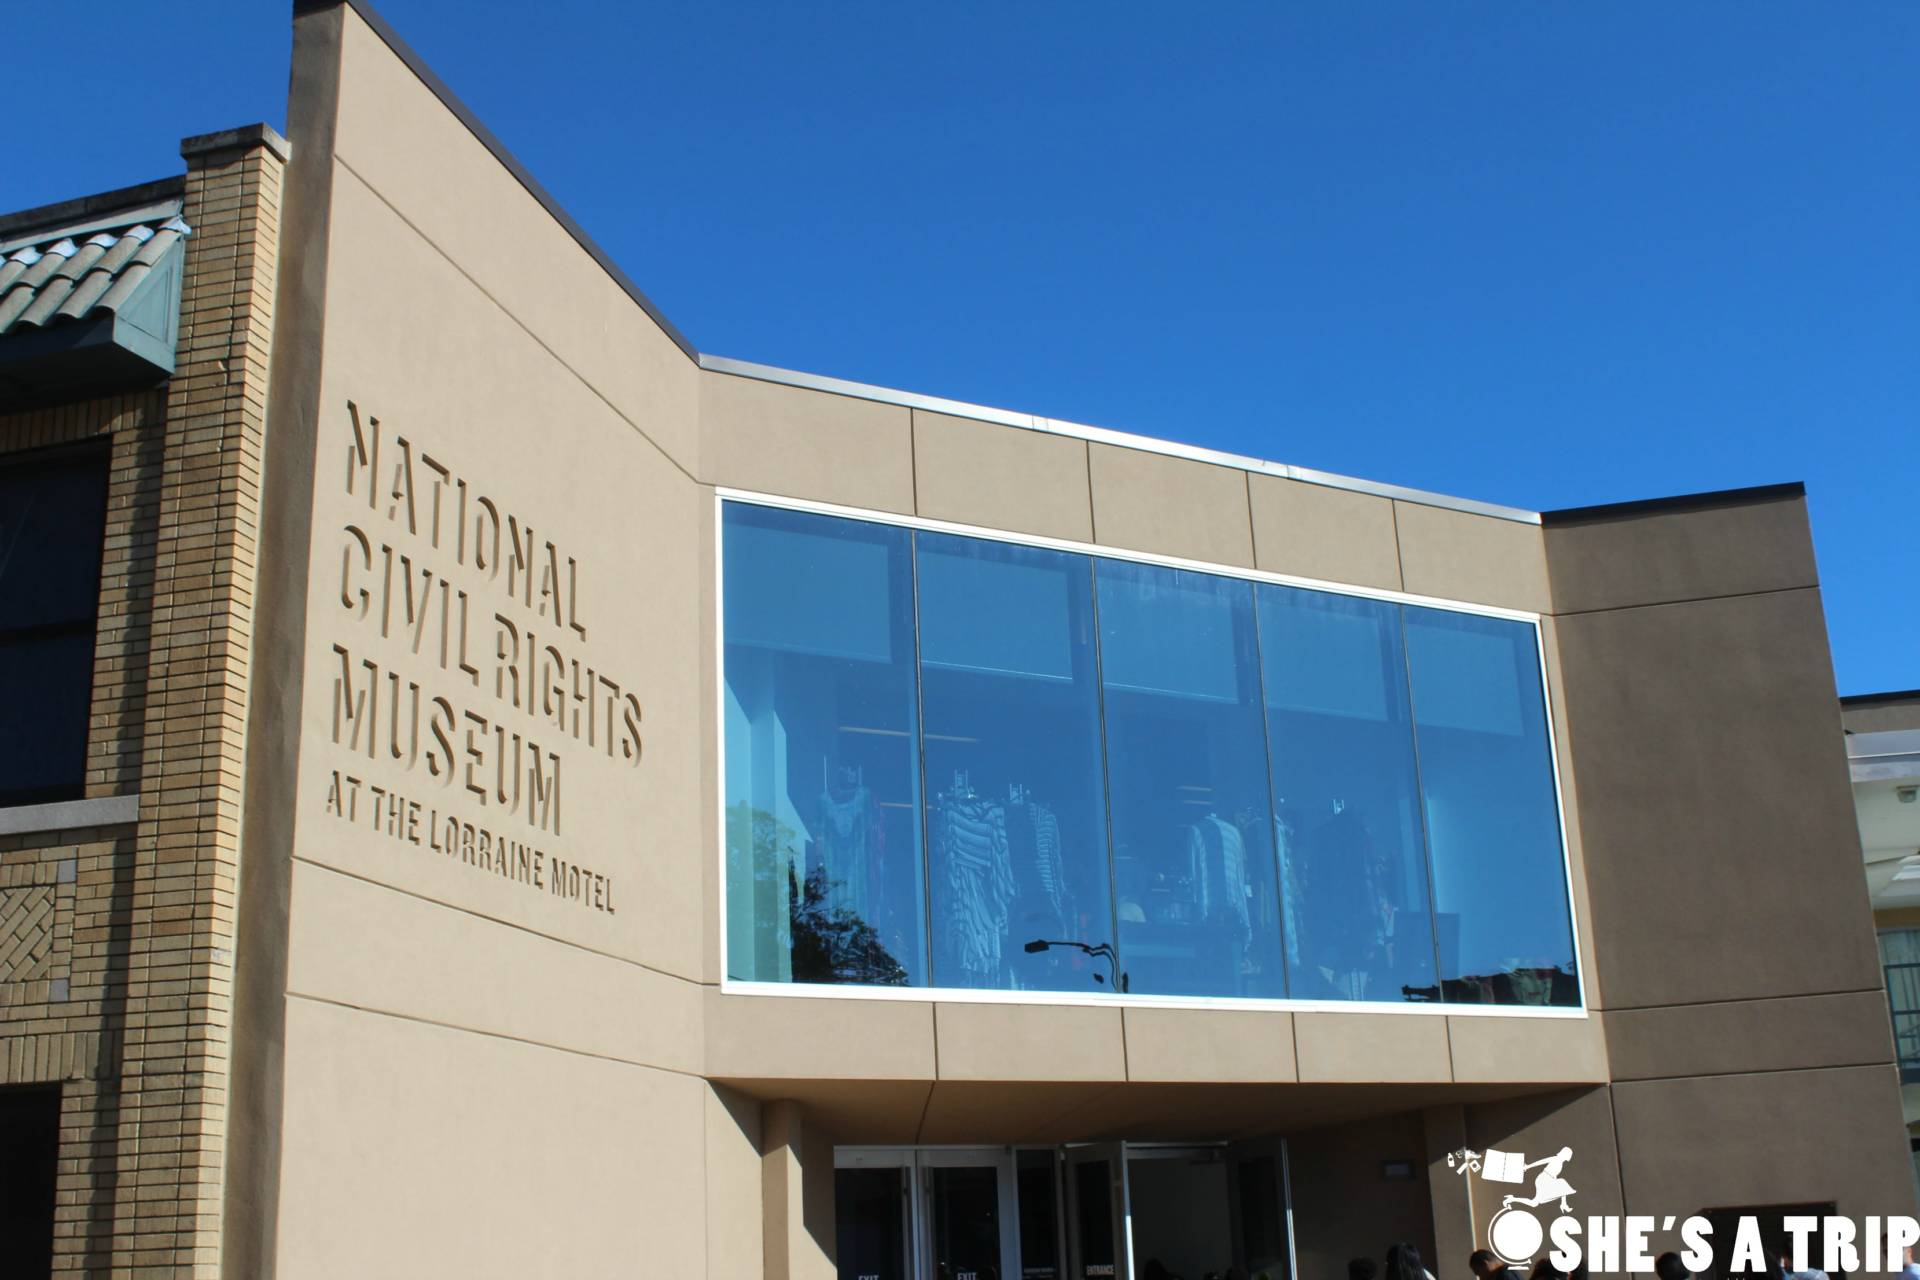 national-civil-rights-museum-1